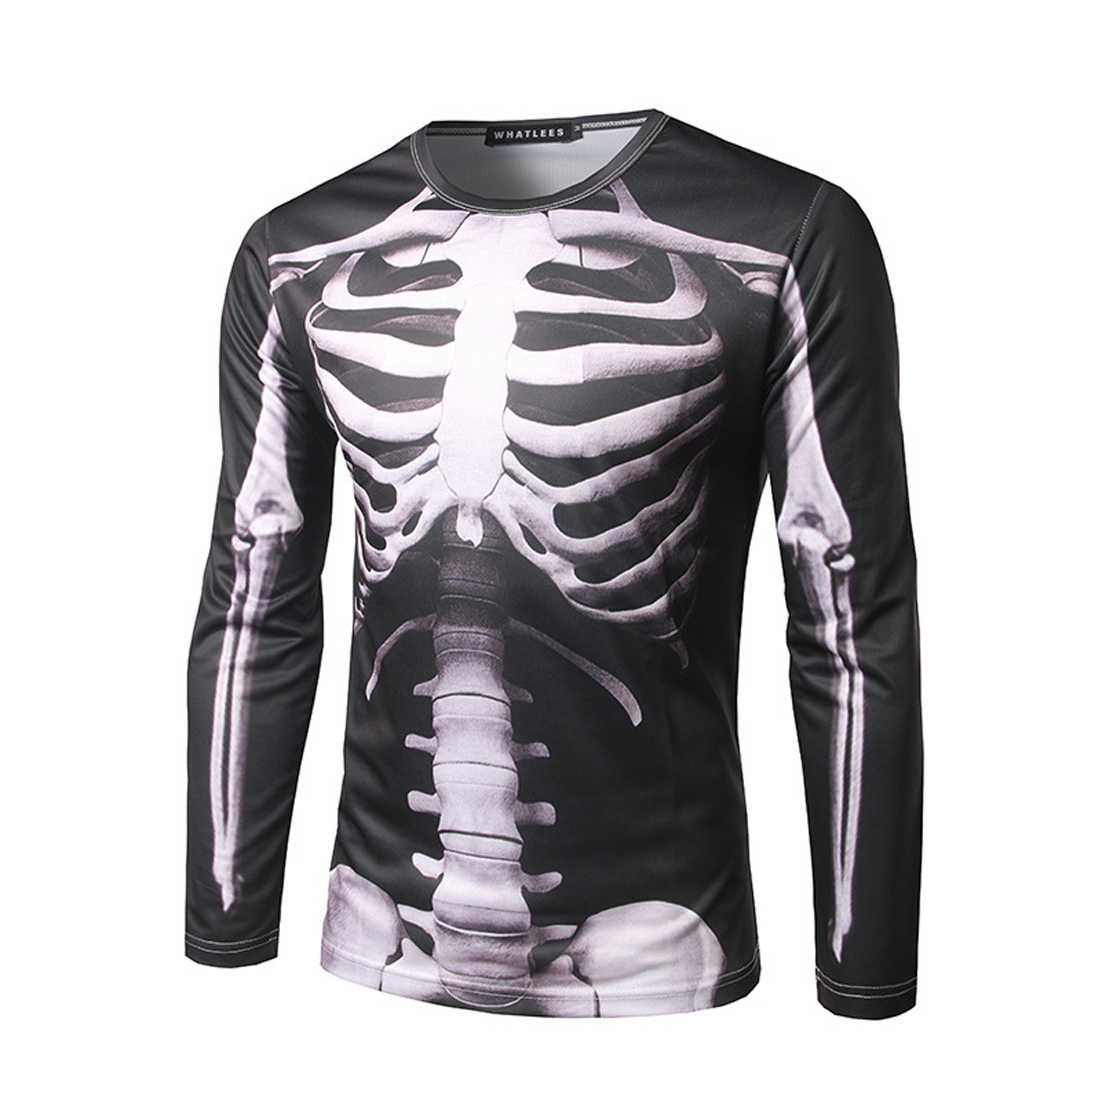 3D Body Skeleton Printed Stylish T Shirt Men O Neck Long